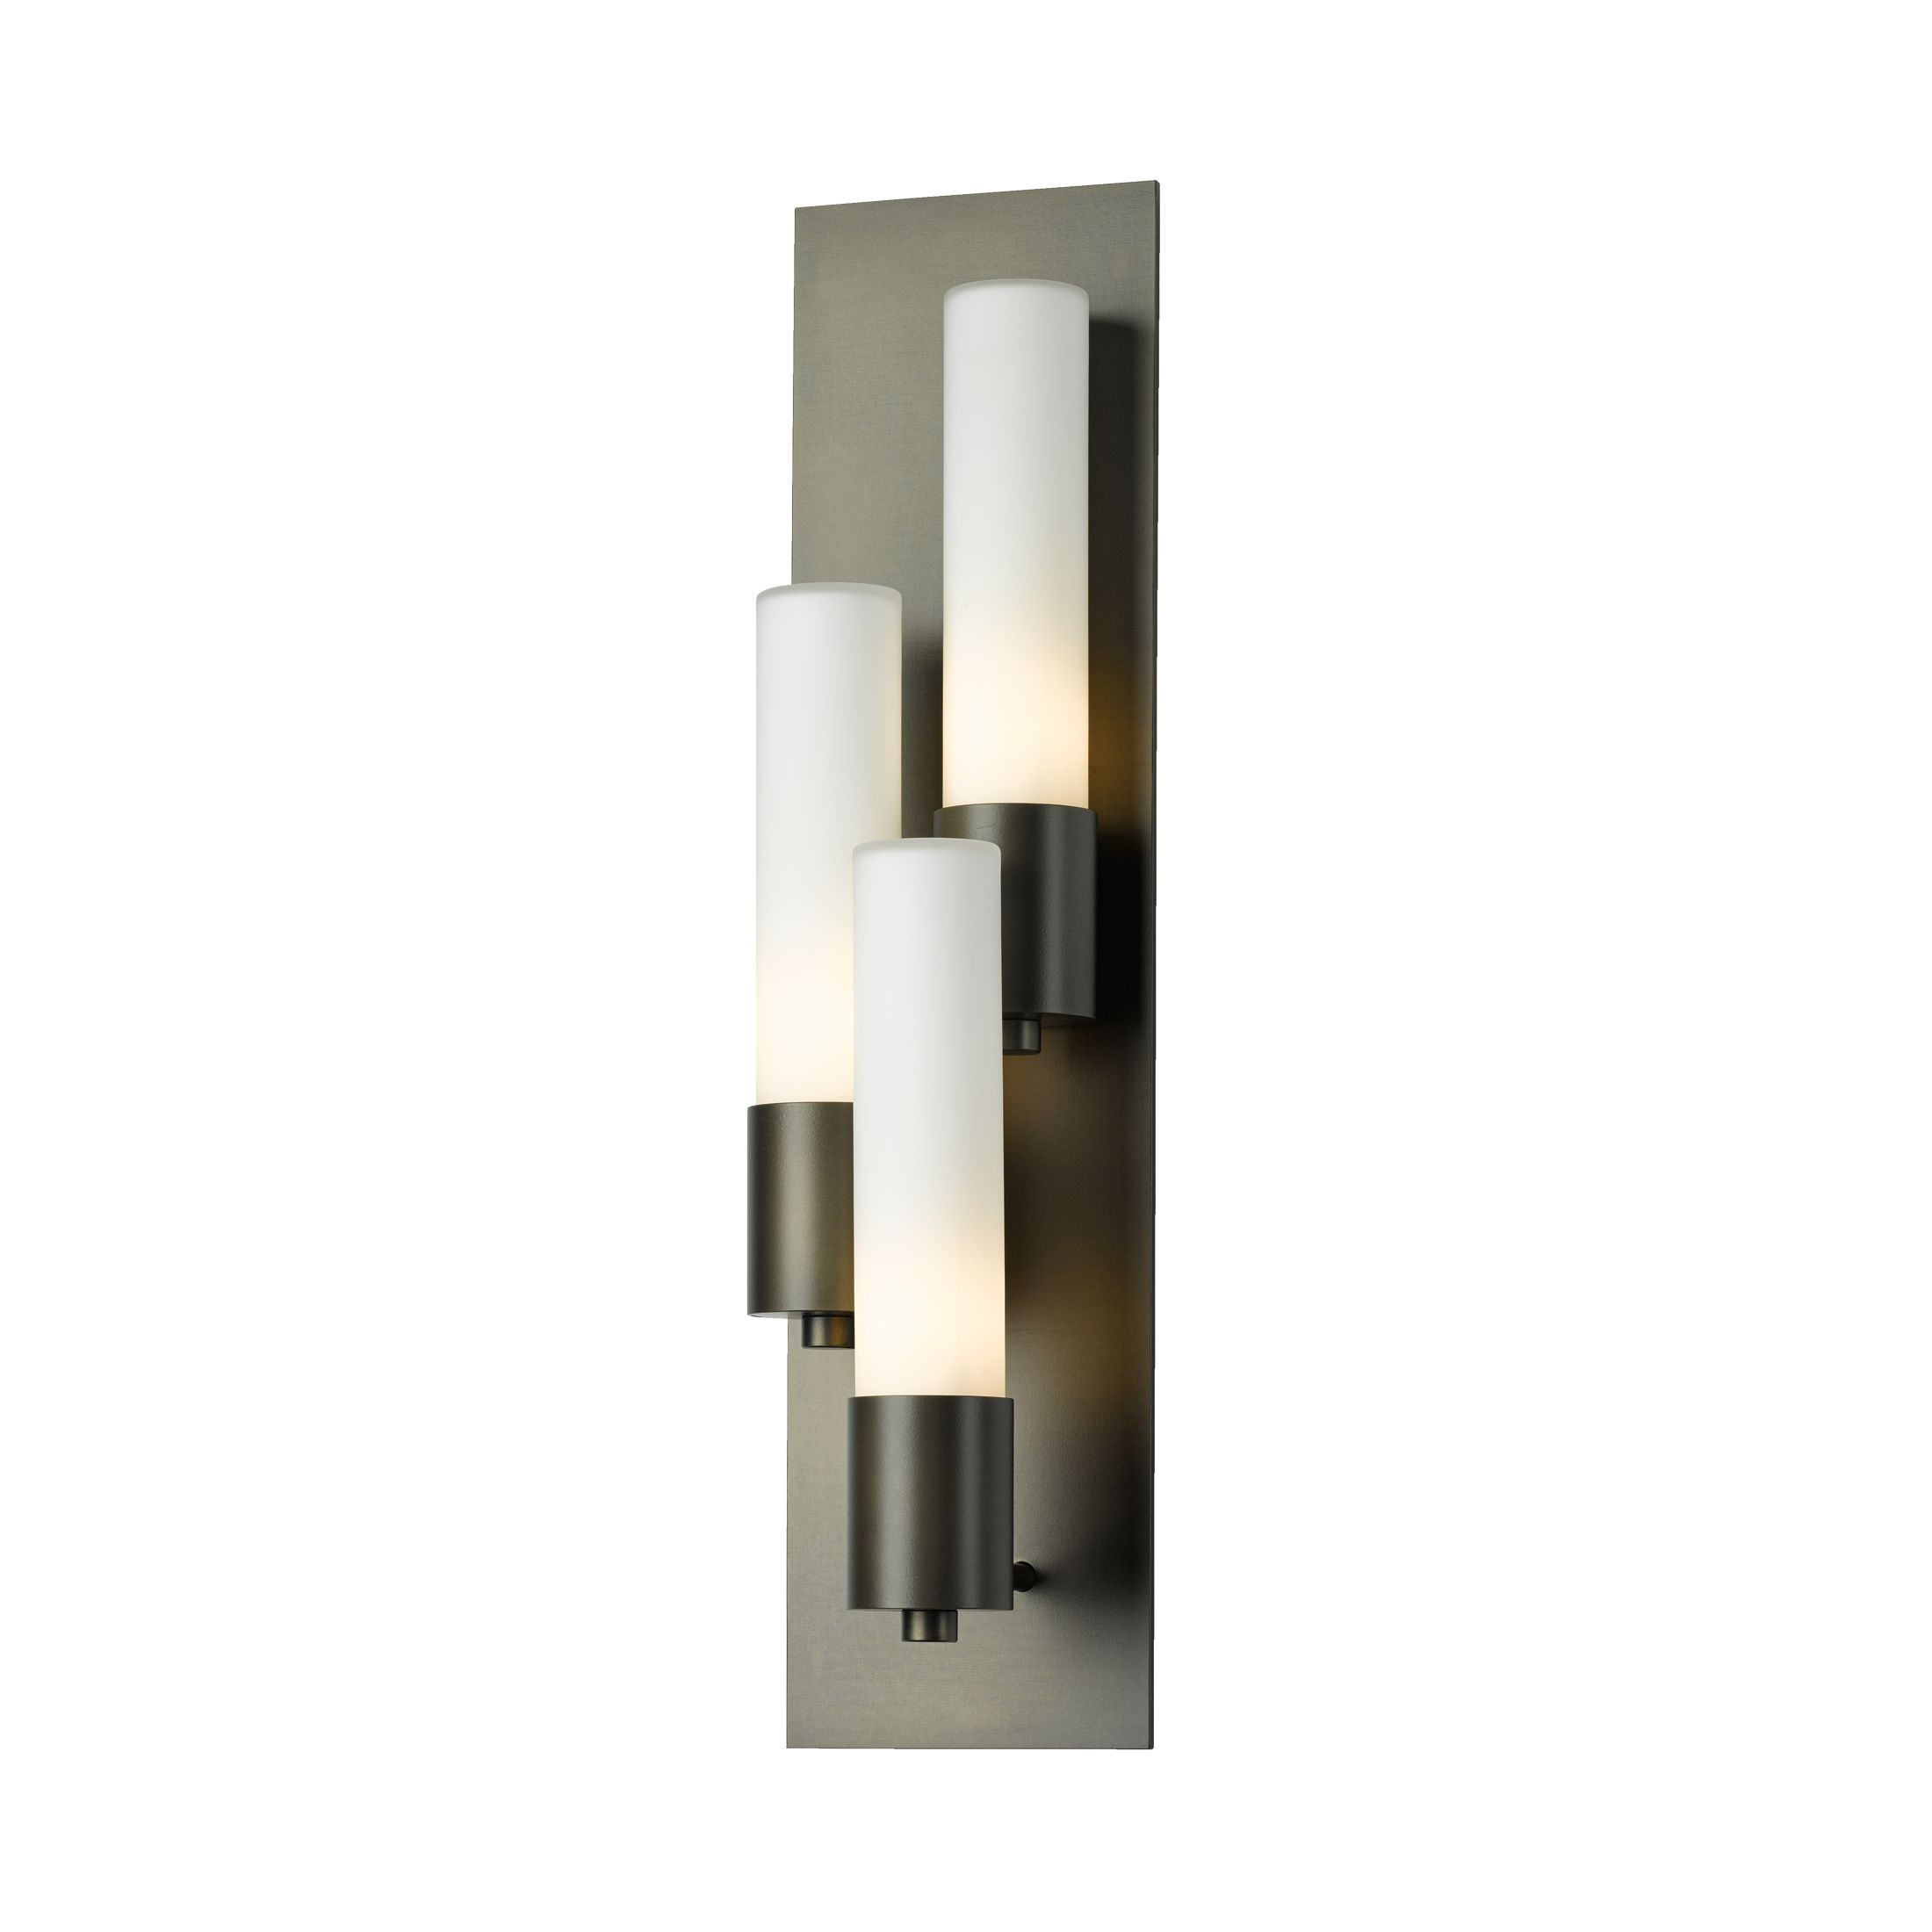 Thumbnail for Pillar 3 Light Sconce